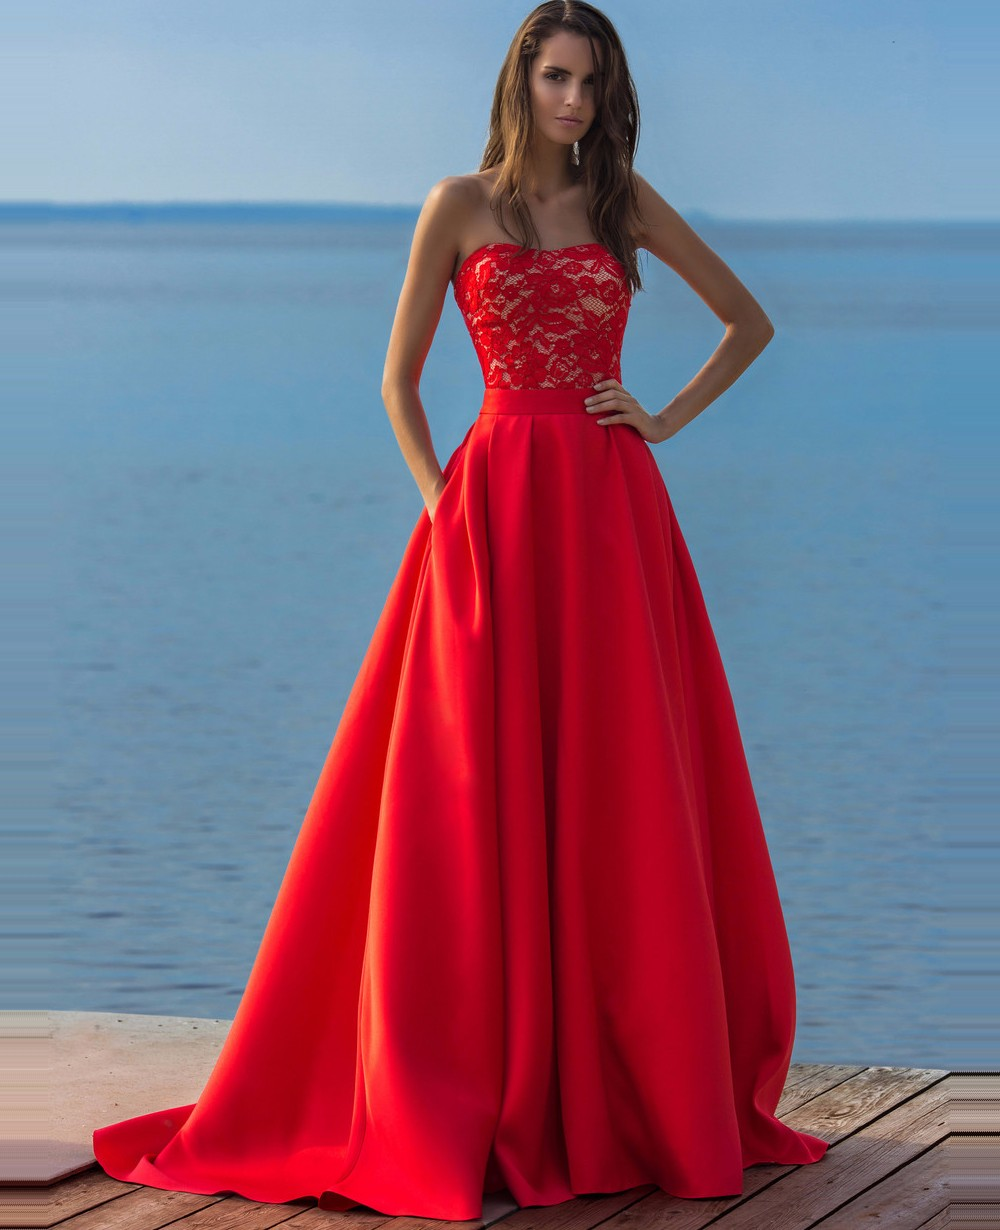 prom dresses | Dress images | Page 555